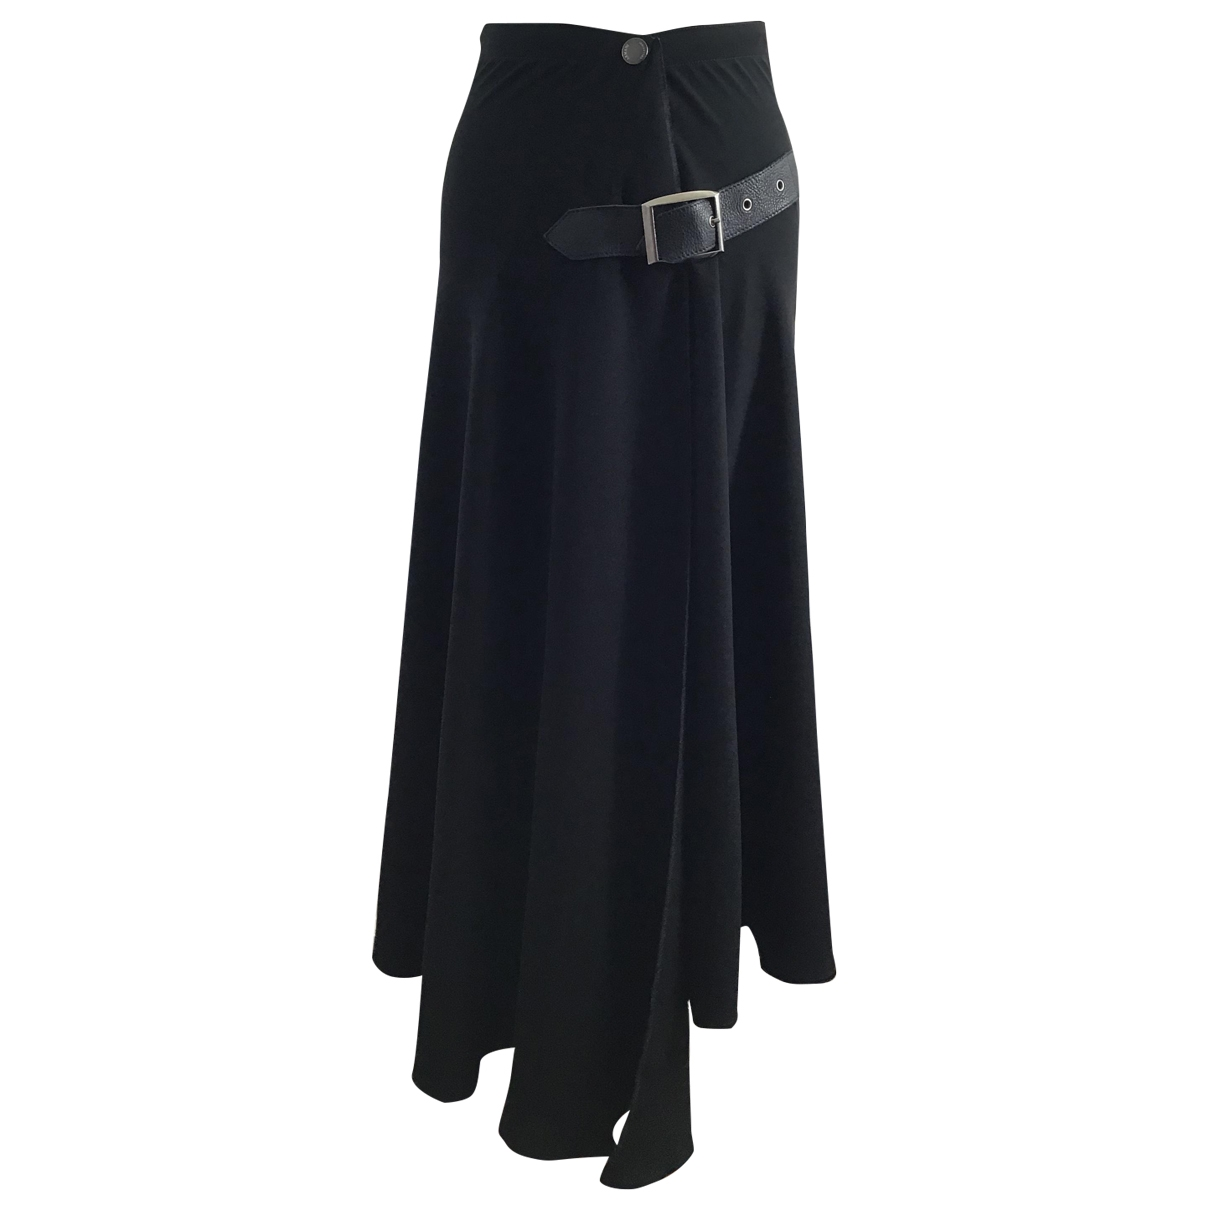 Armani Collezioni \N Black skirt for Women 38 IT